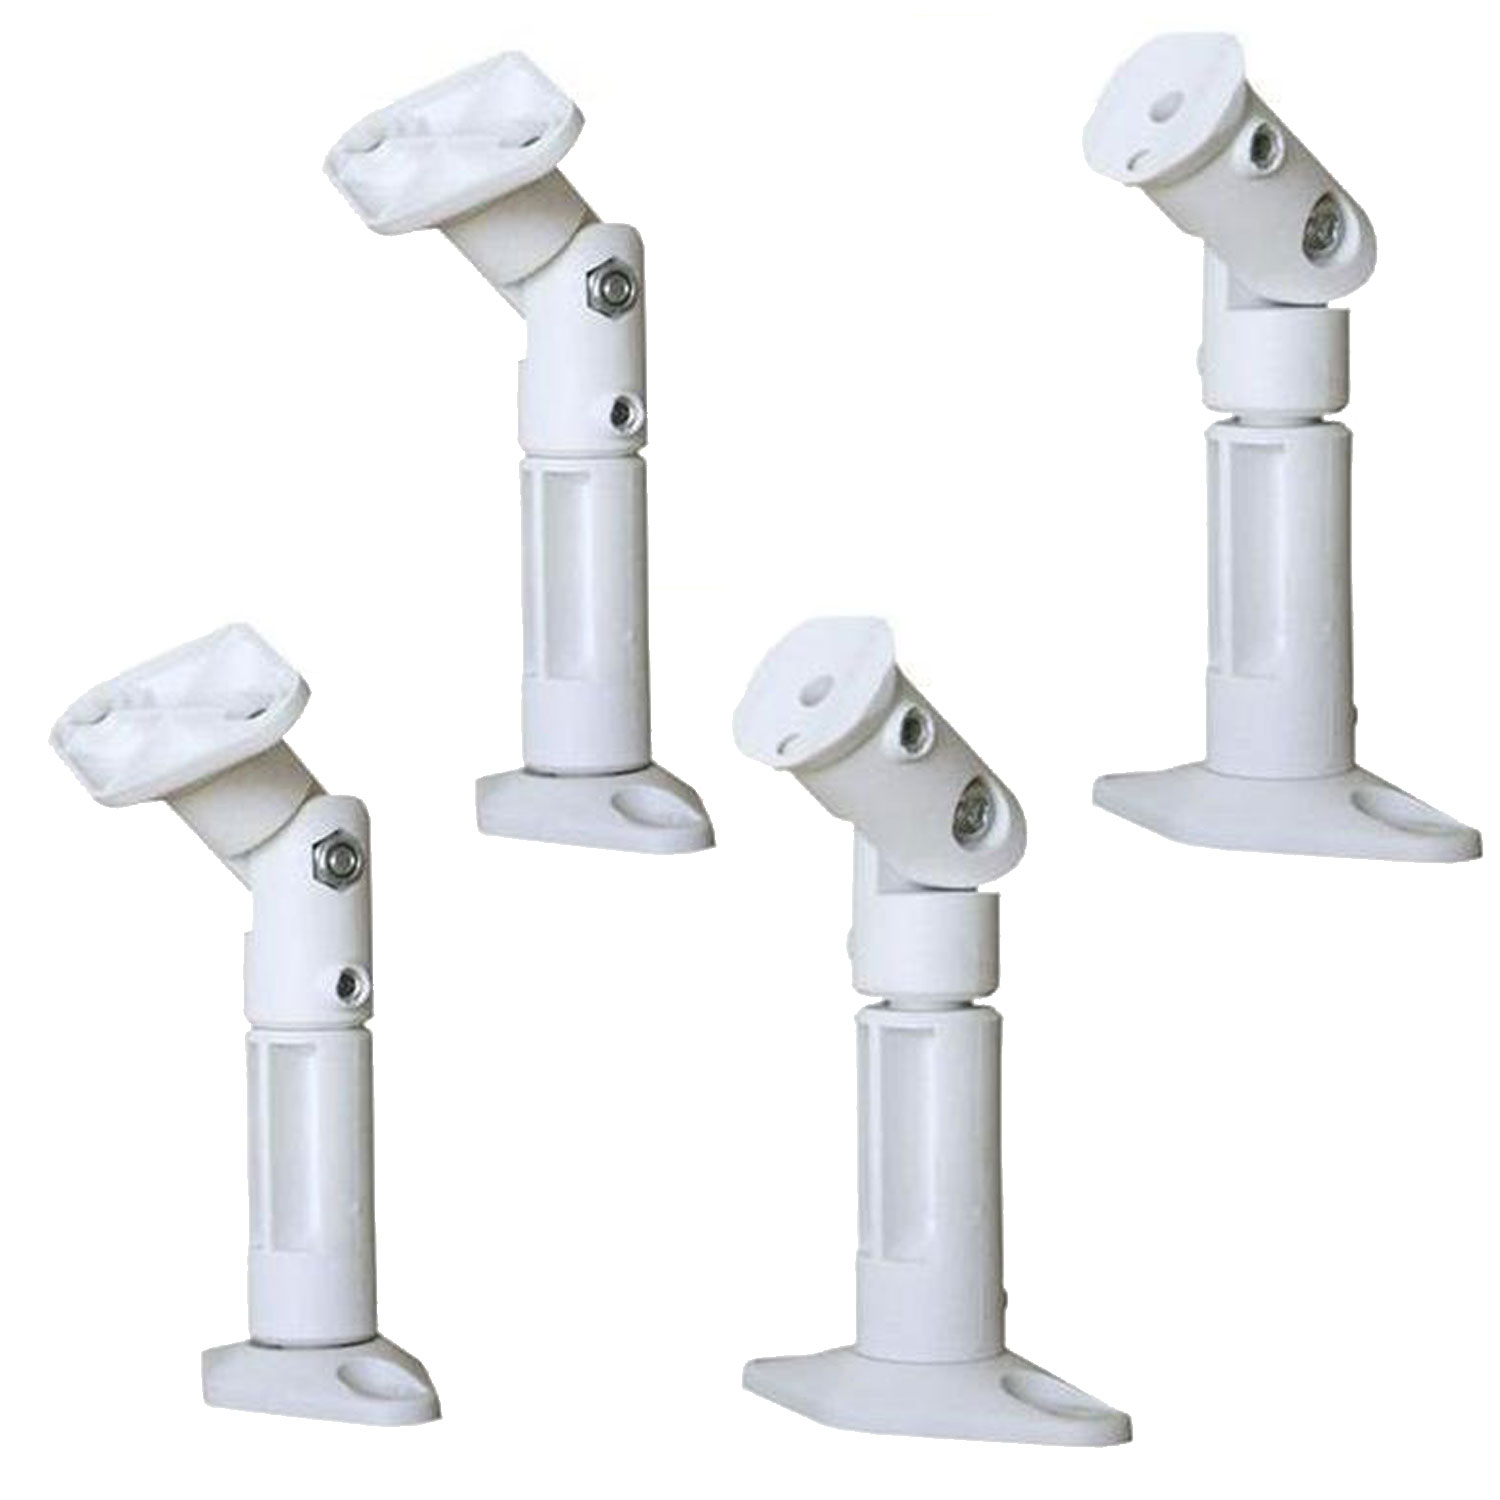 VideoSecu 4 Packs of Satellite Speaker Mounts Mounting on Wall/ Ceiling Home Theater Surround Sound Brackets White BS7